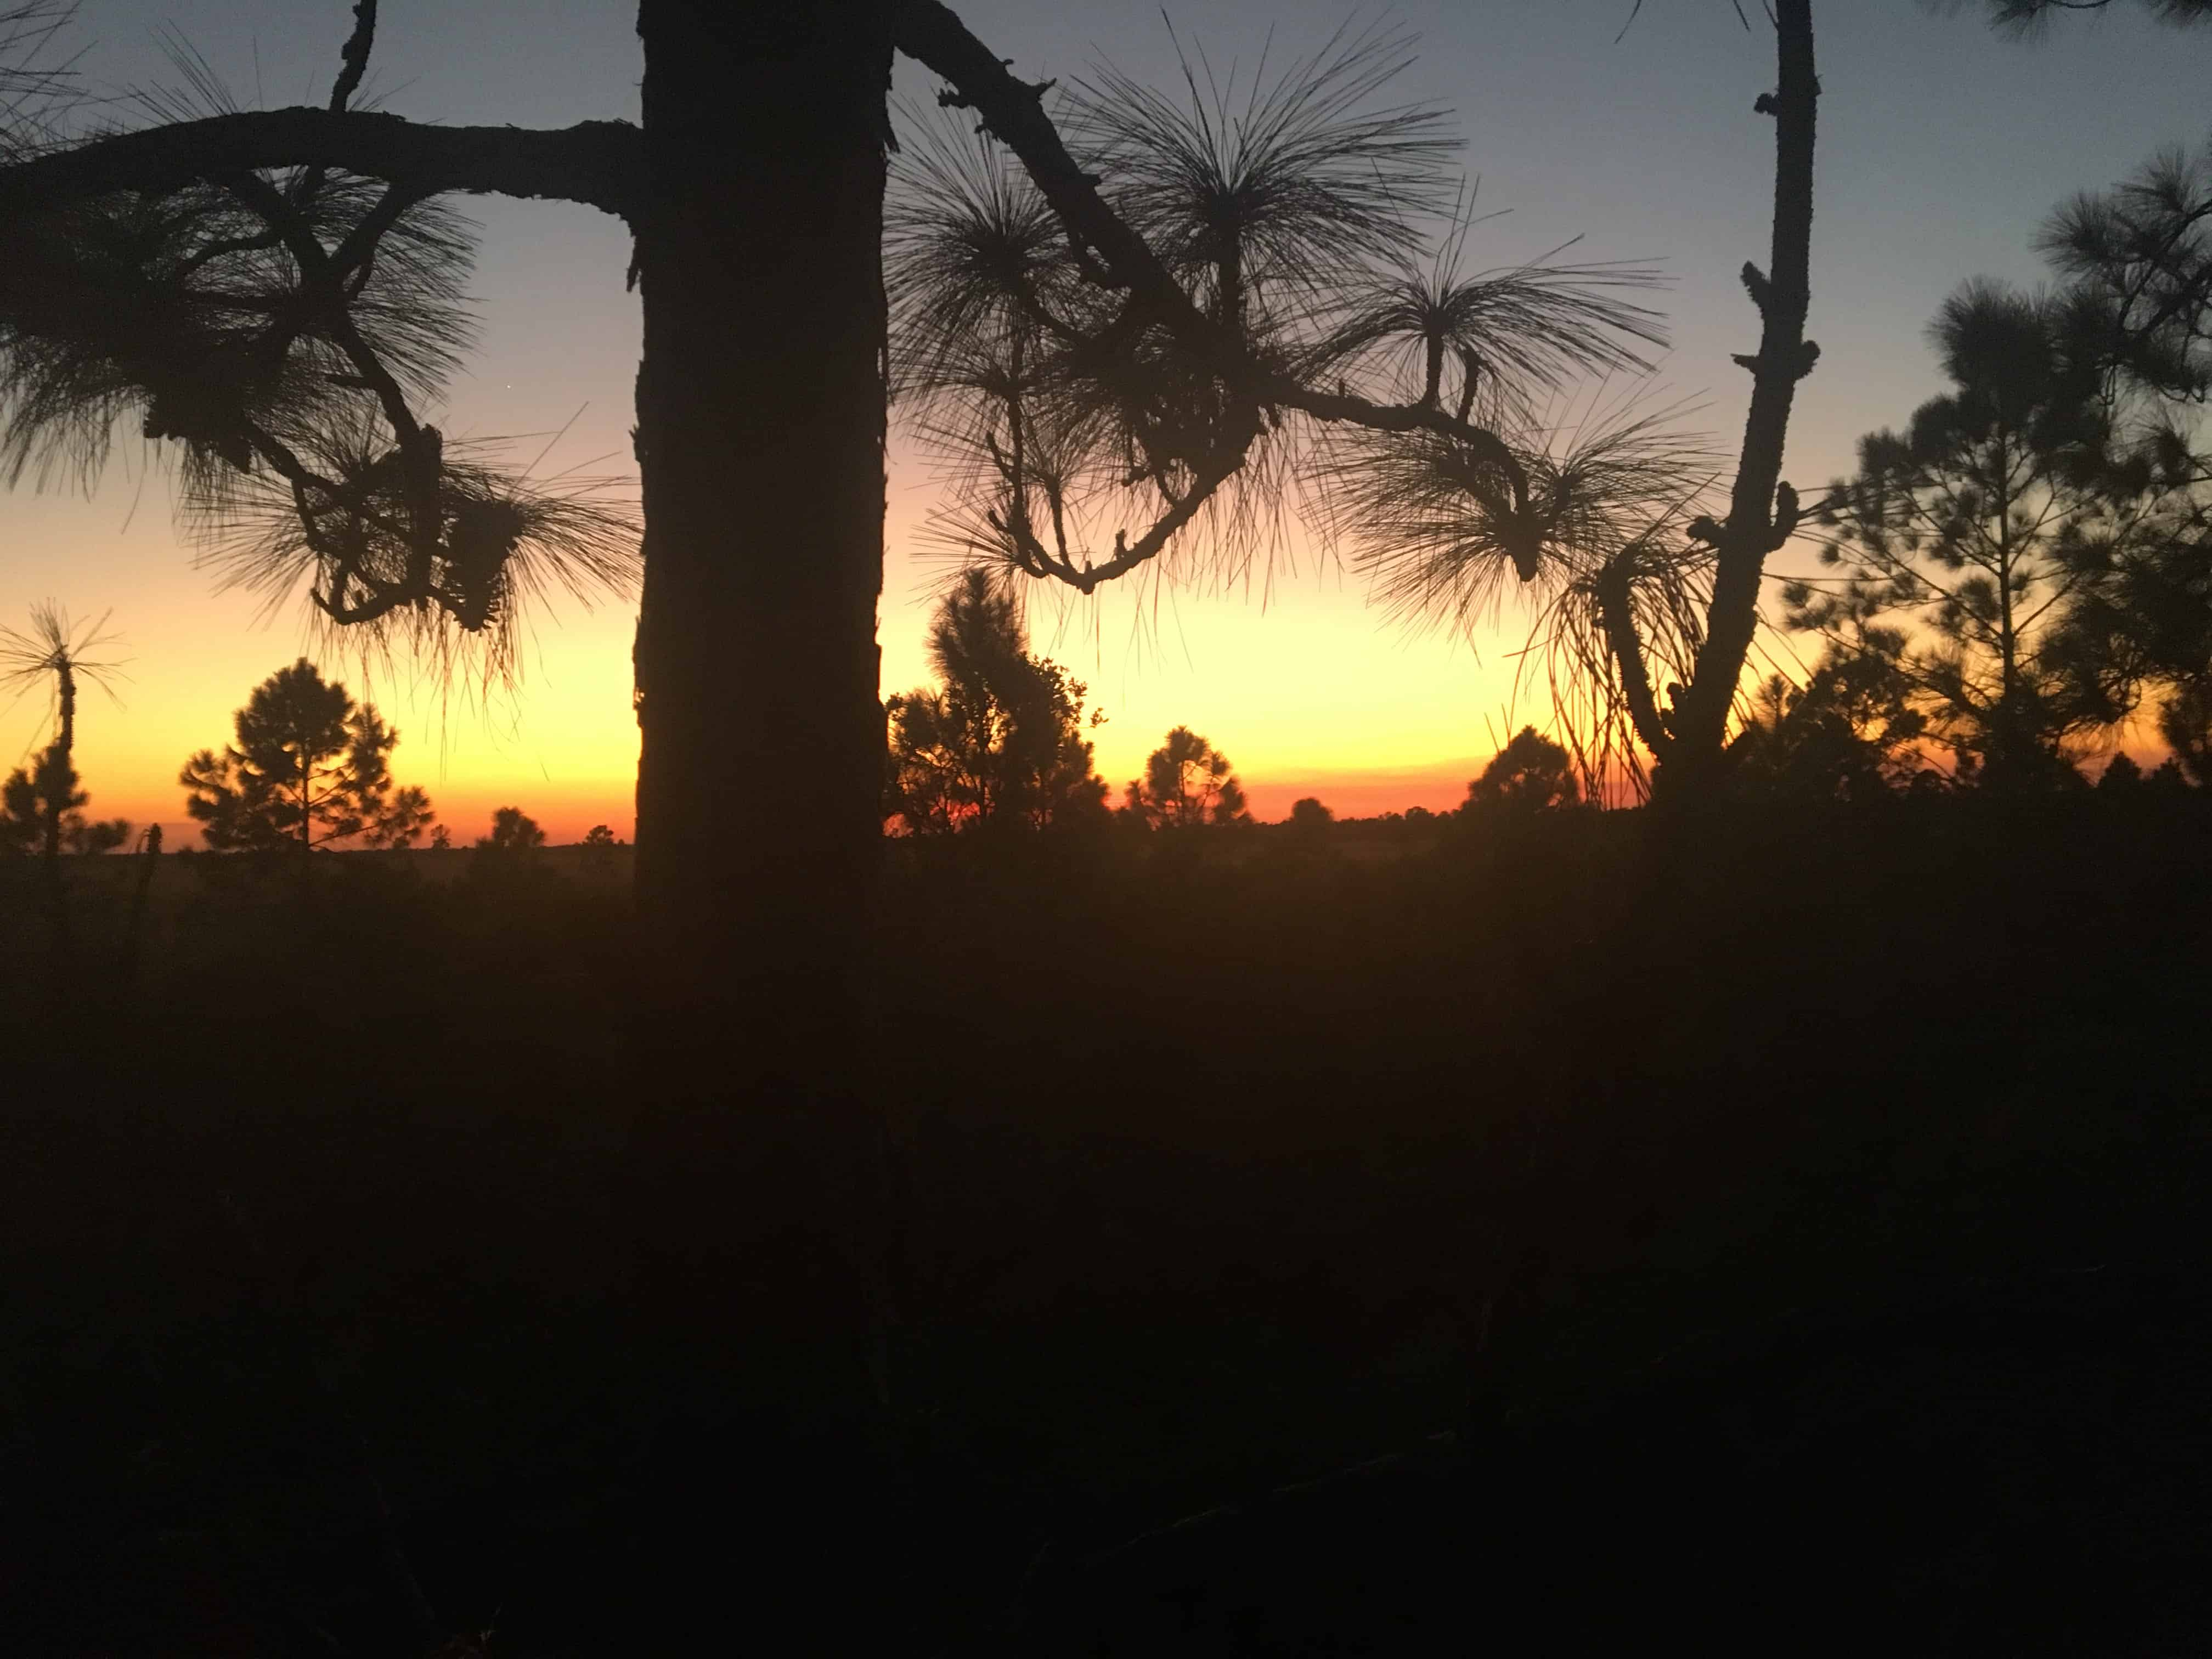 Sunset in Glades County Florida am my hunting camp